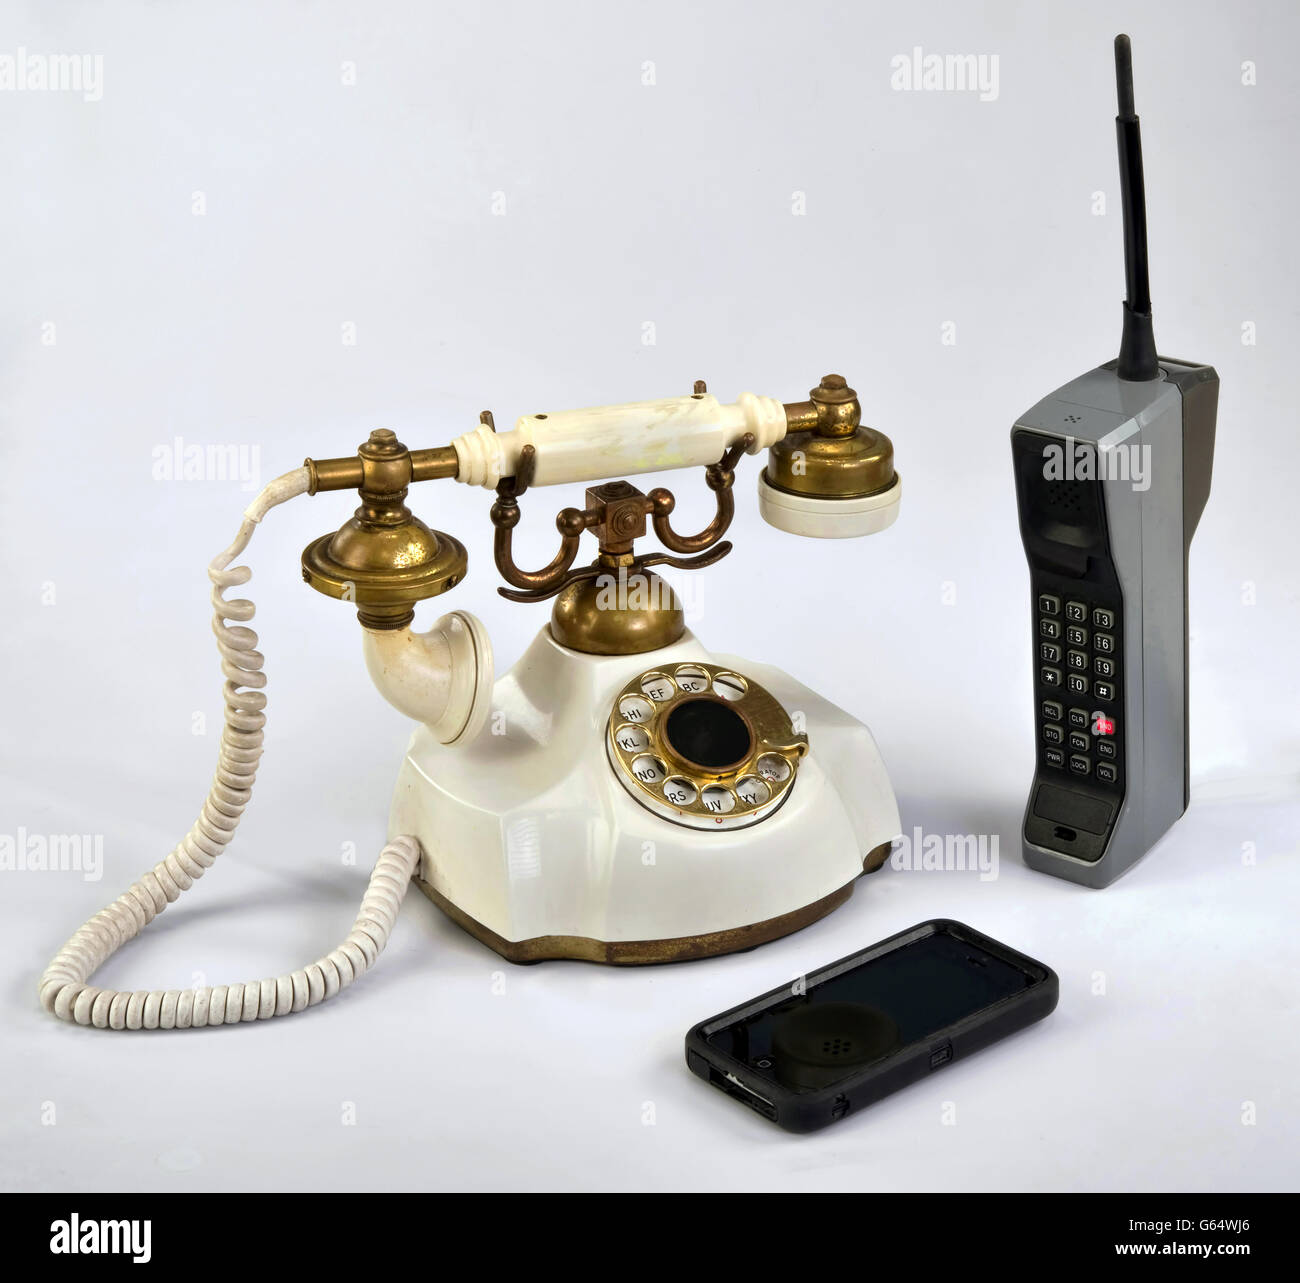 Working smart cell phone and old white rotary telephone. - Stock Image